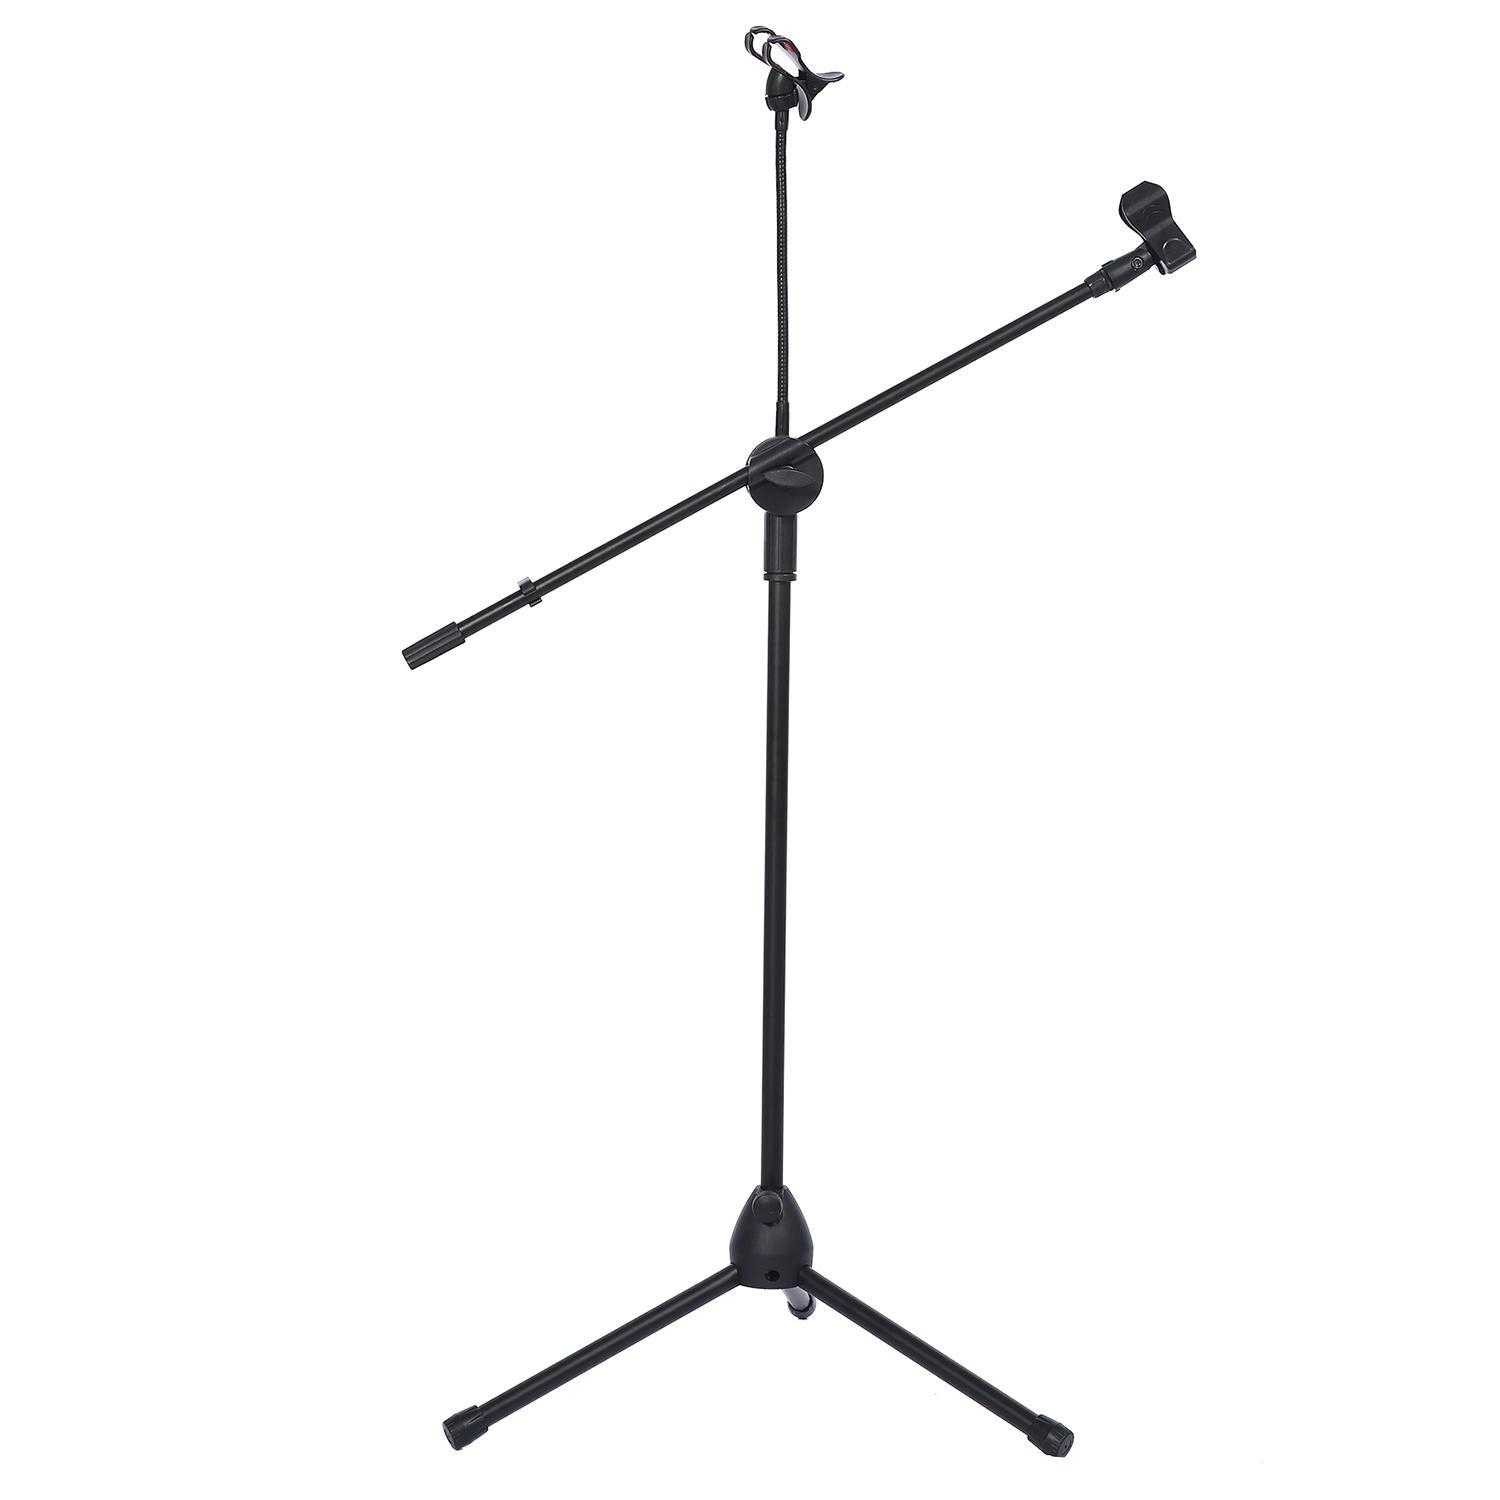 Generic Music Mic Microphone Stand Tablet Mount With 360° Swivel